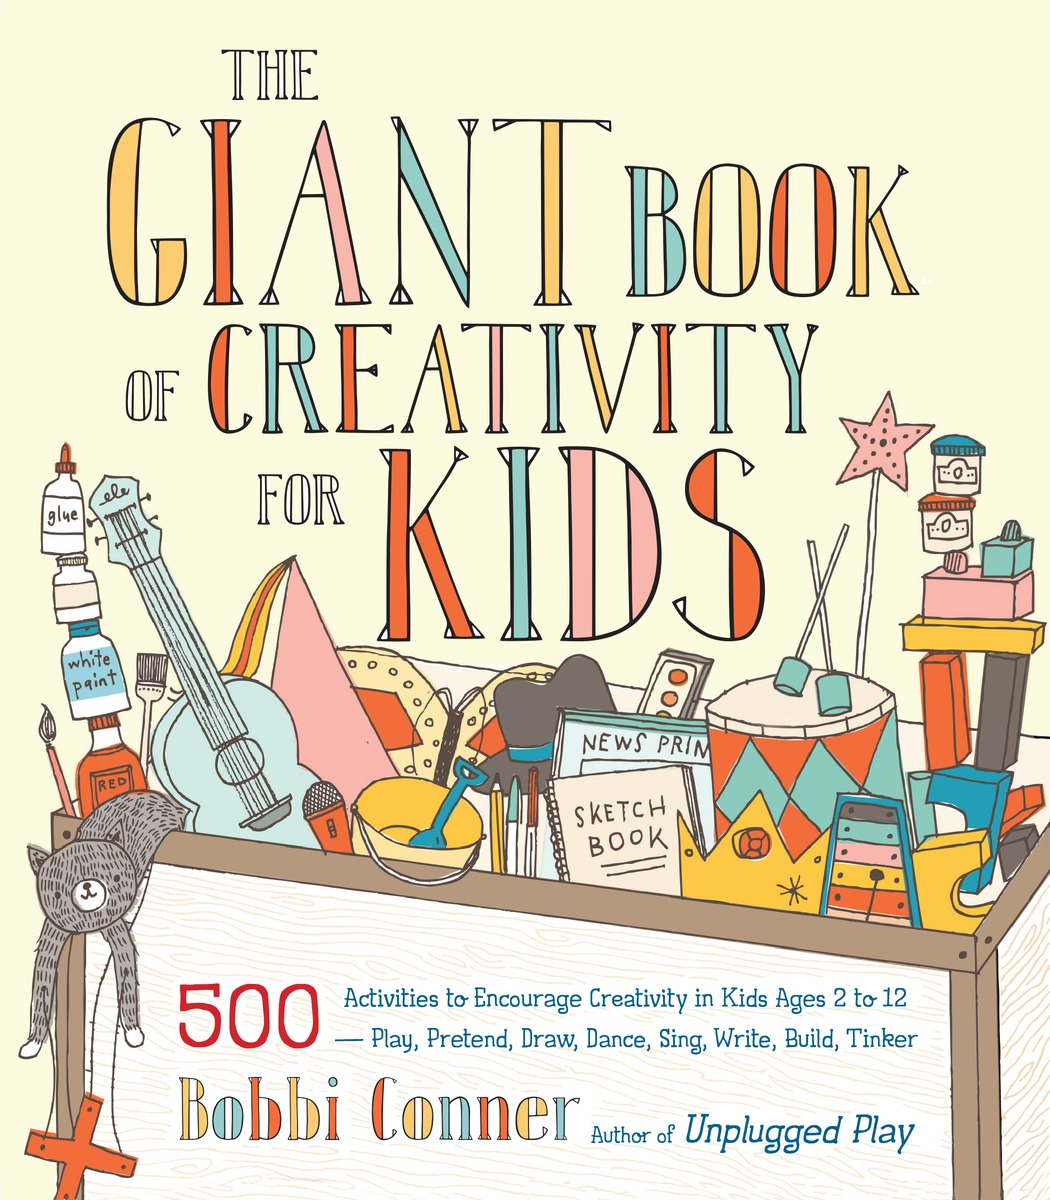 The Giant Book of Creativity for Kids managerial creativity